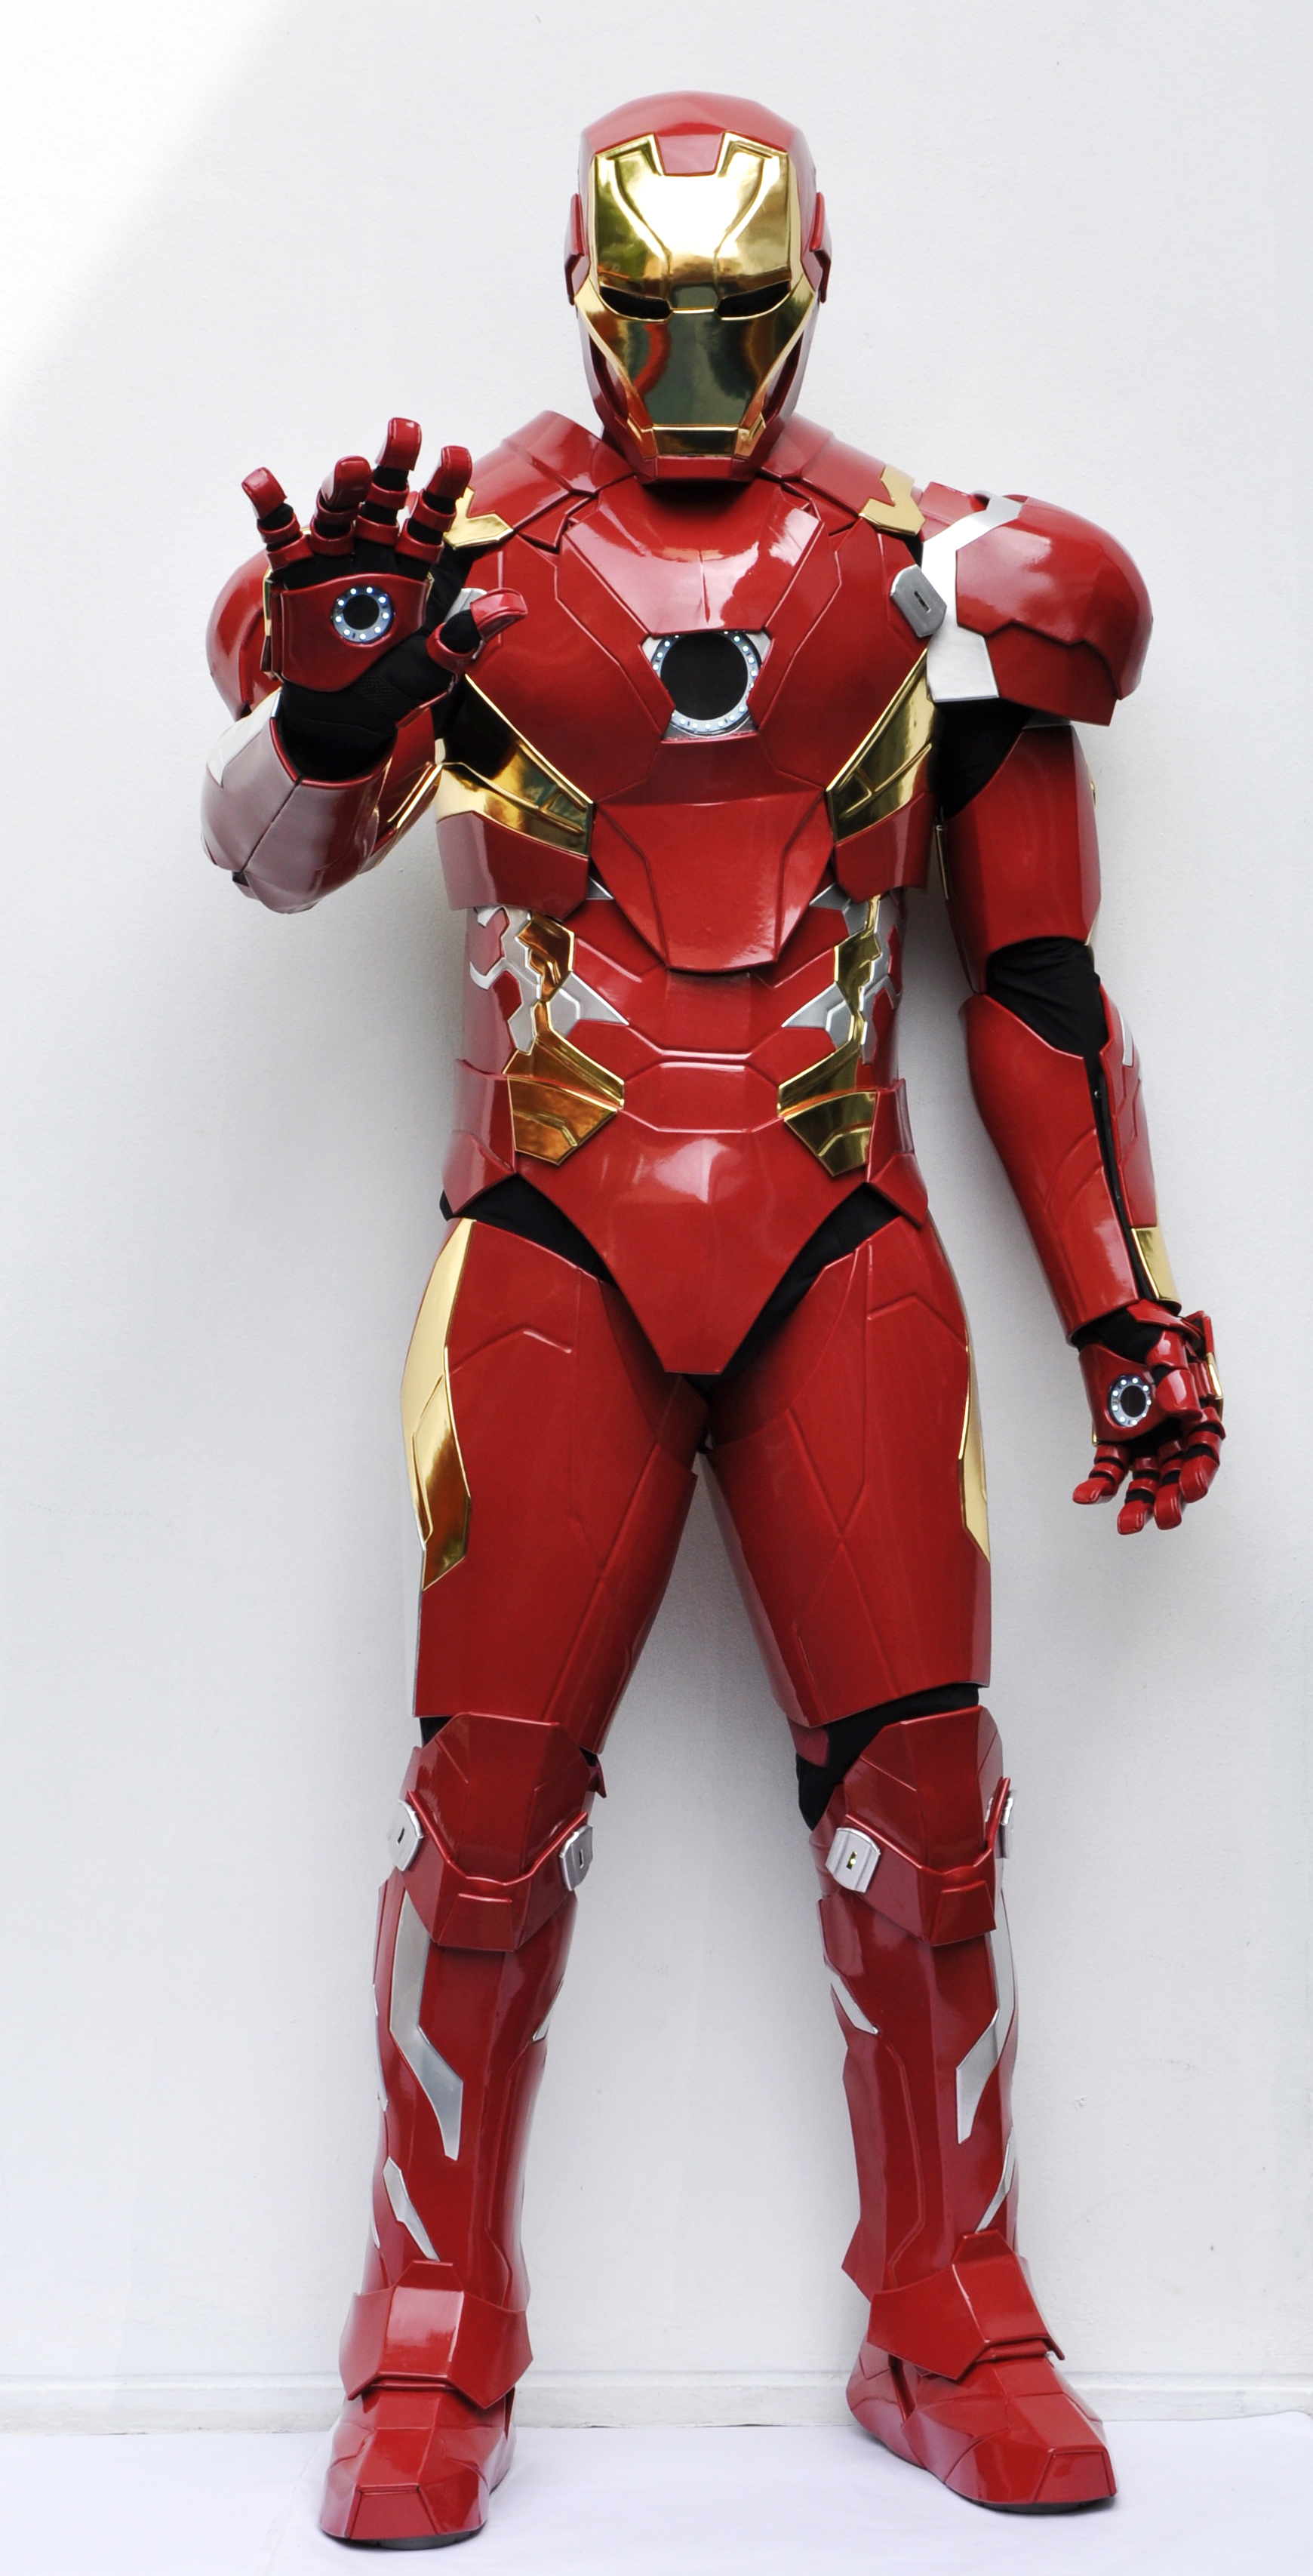 Ironman costume palmup front